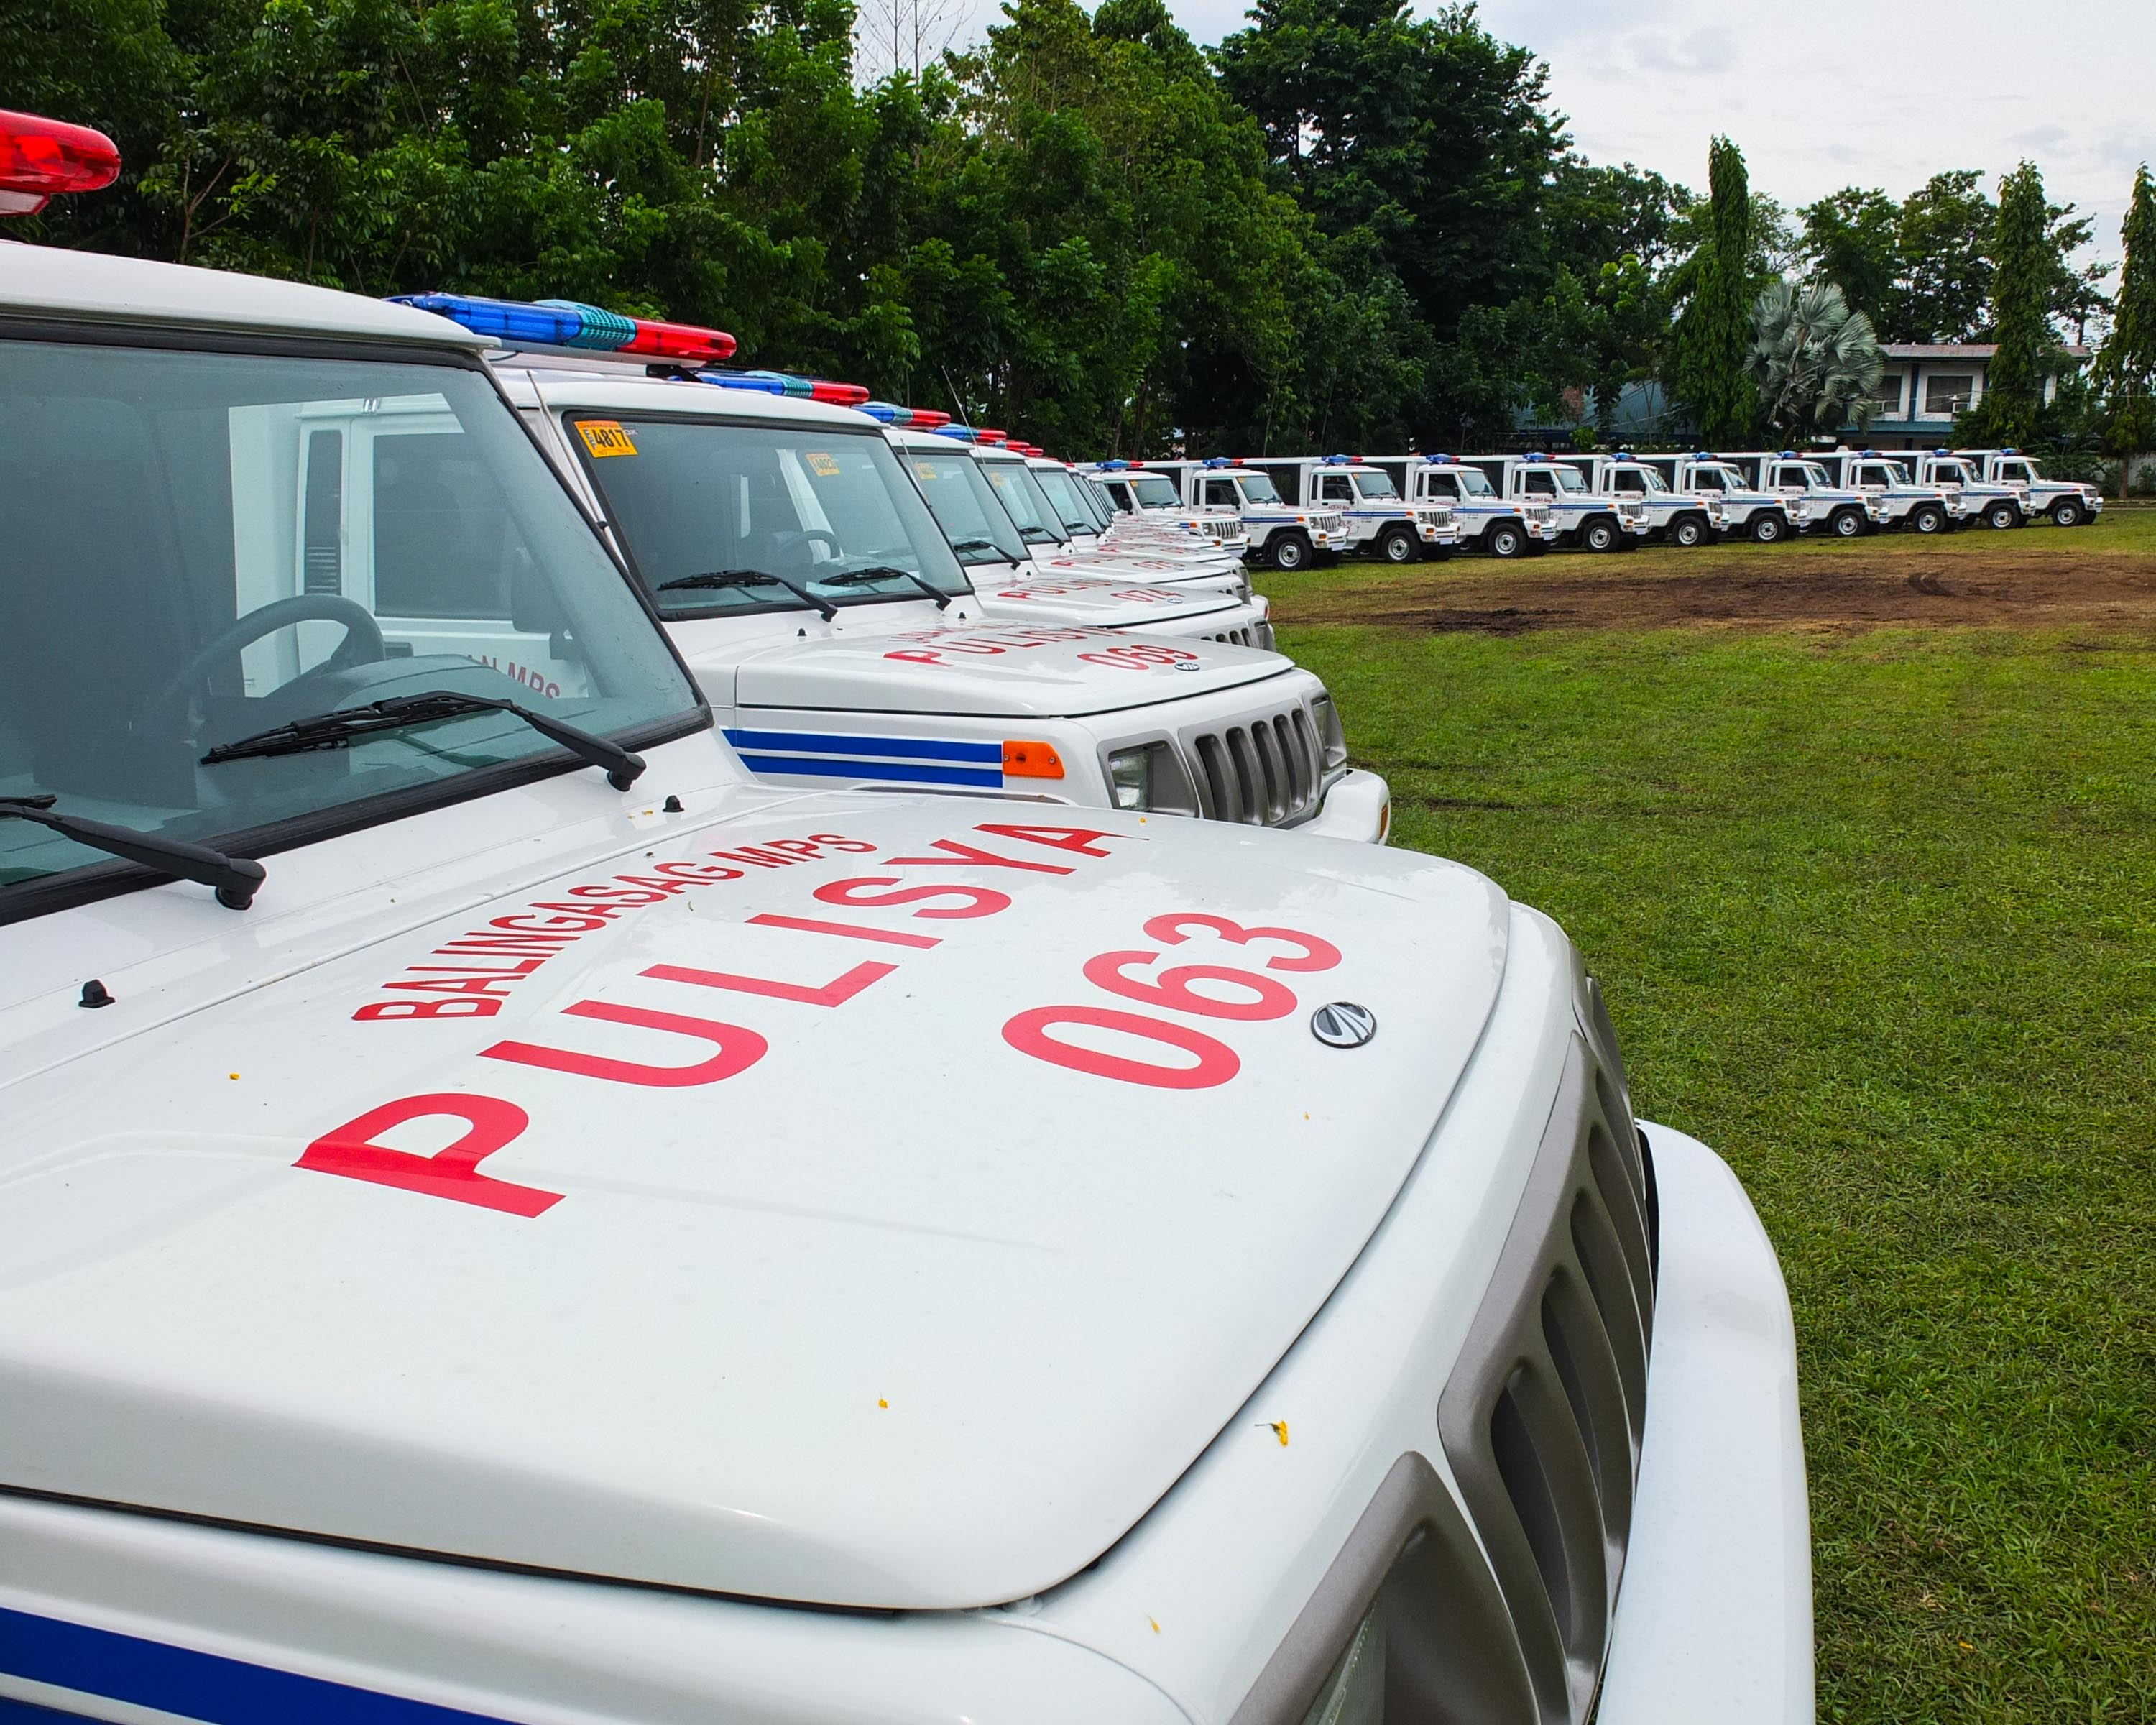 FOR PATROL. 23 units of this patrol jeep were distributed to the 23 towns of Misamis Oriental on Friday, July 3, 2015 at Camp Vicente Alagar, headquarters of the PNP in Northern Mindanao. Photo by Bobby Lagsa/Rappler